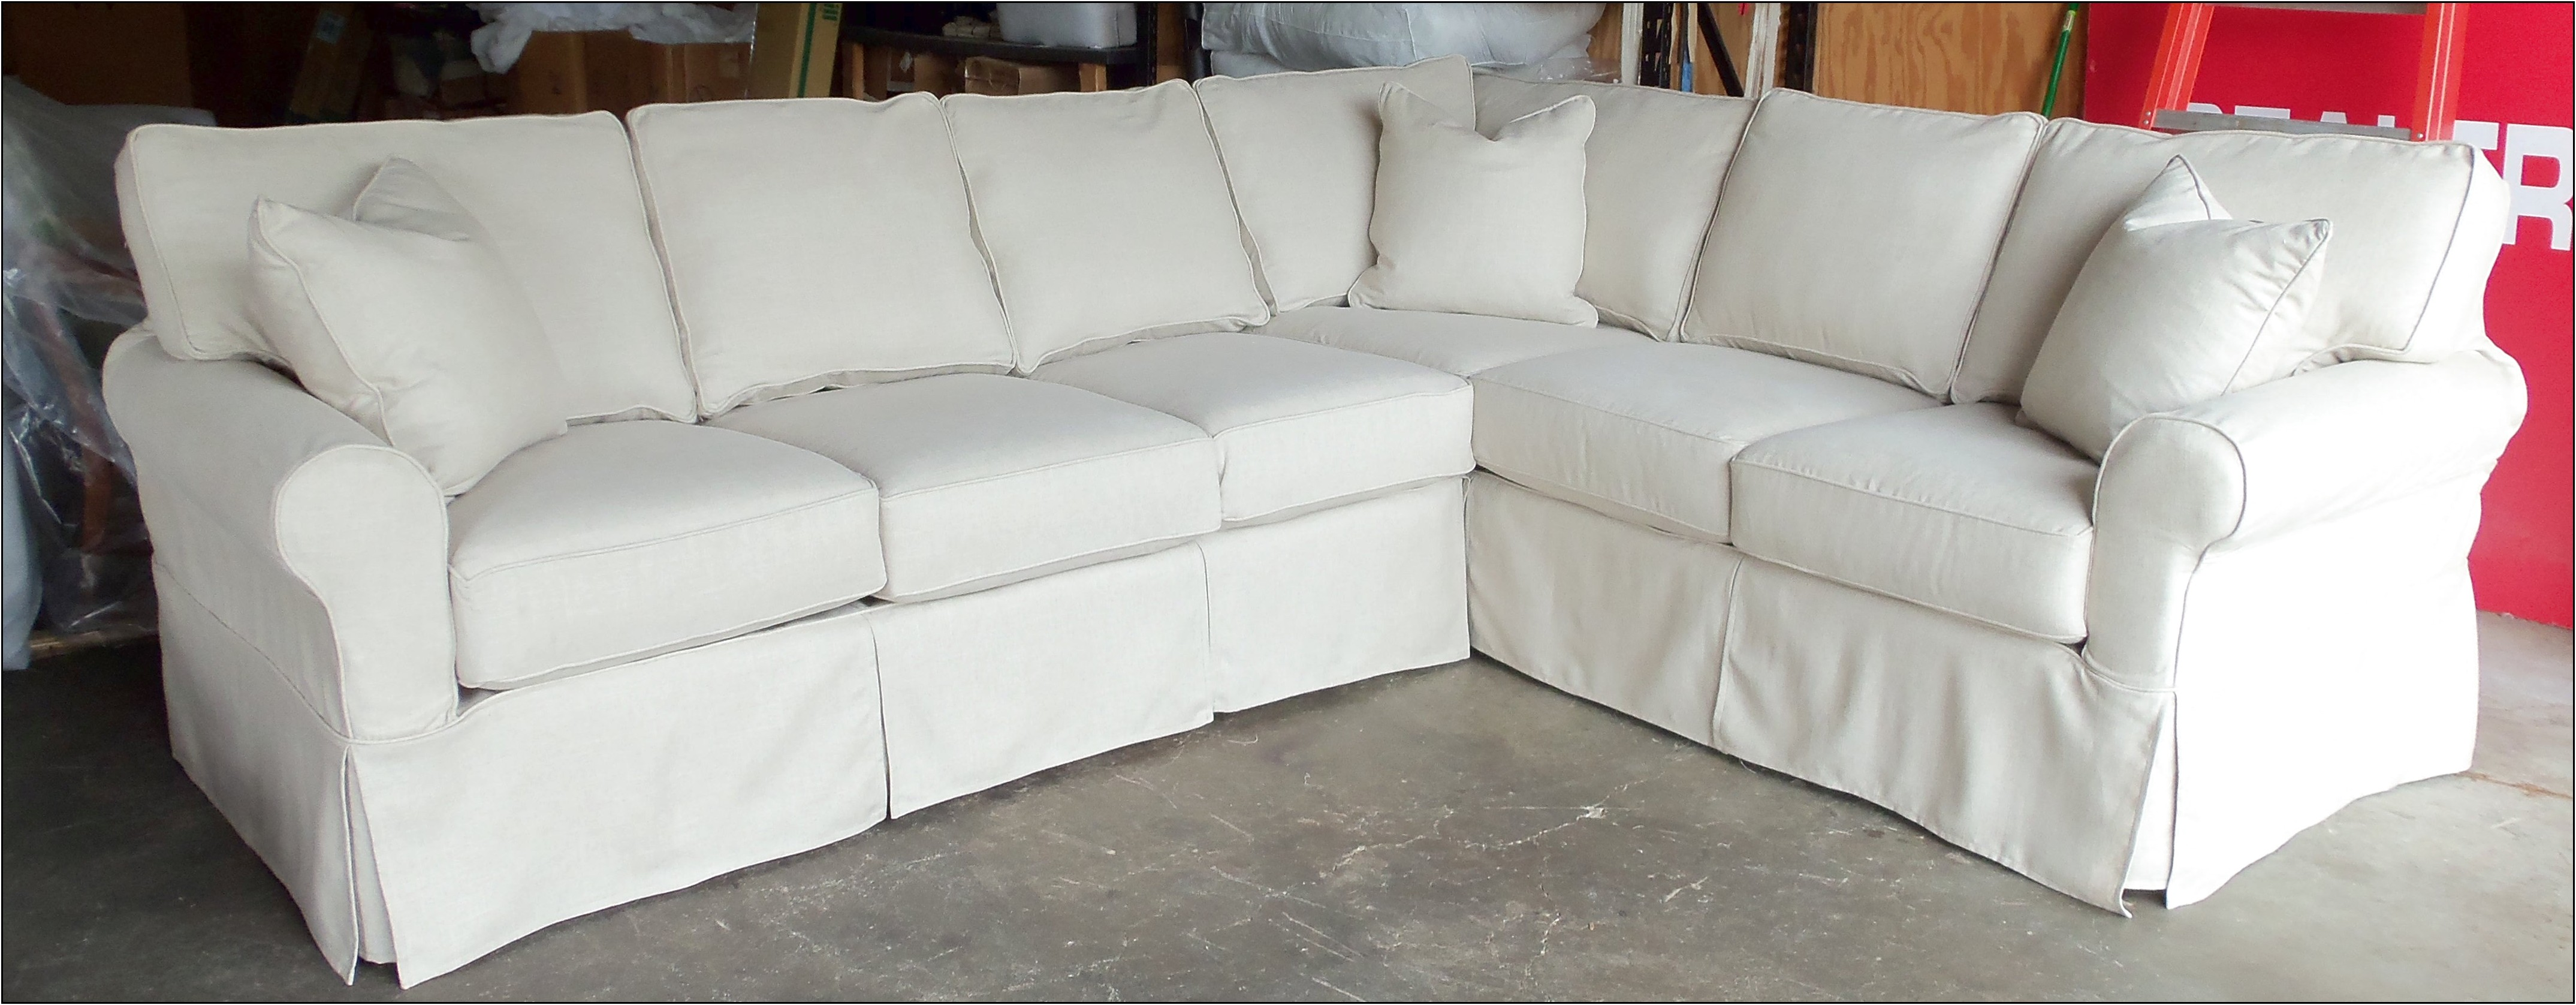 Furniture Costco Leather Sectional